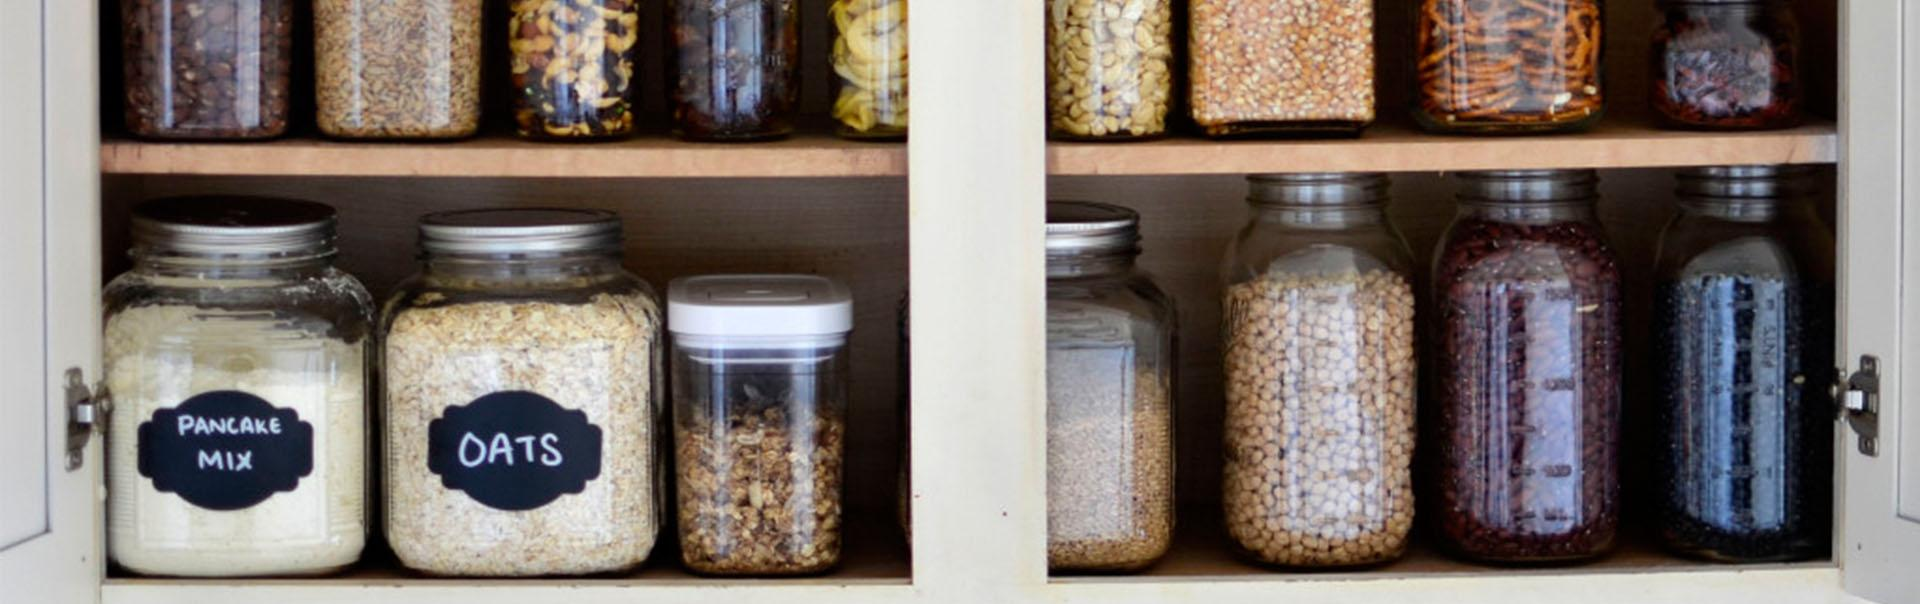 Cupboard Ingredients Nuts and Seeds